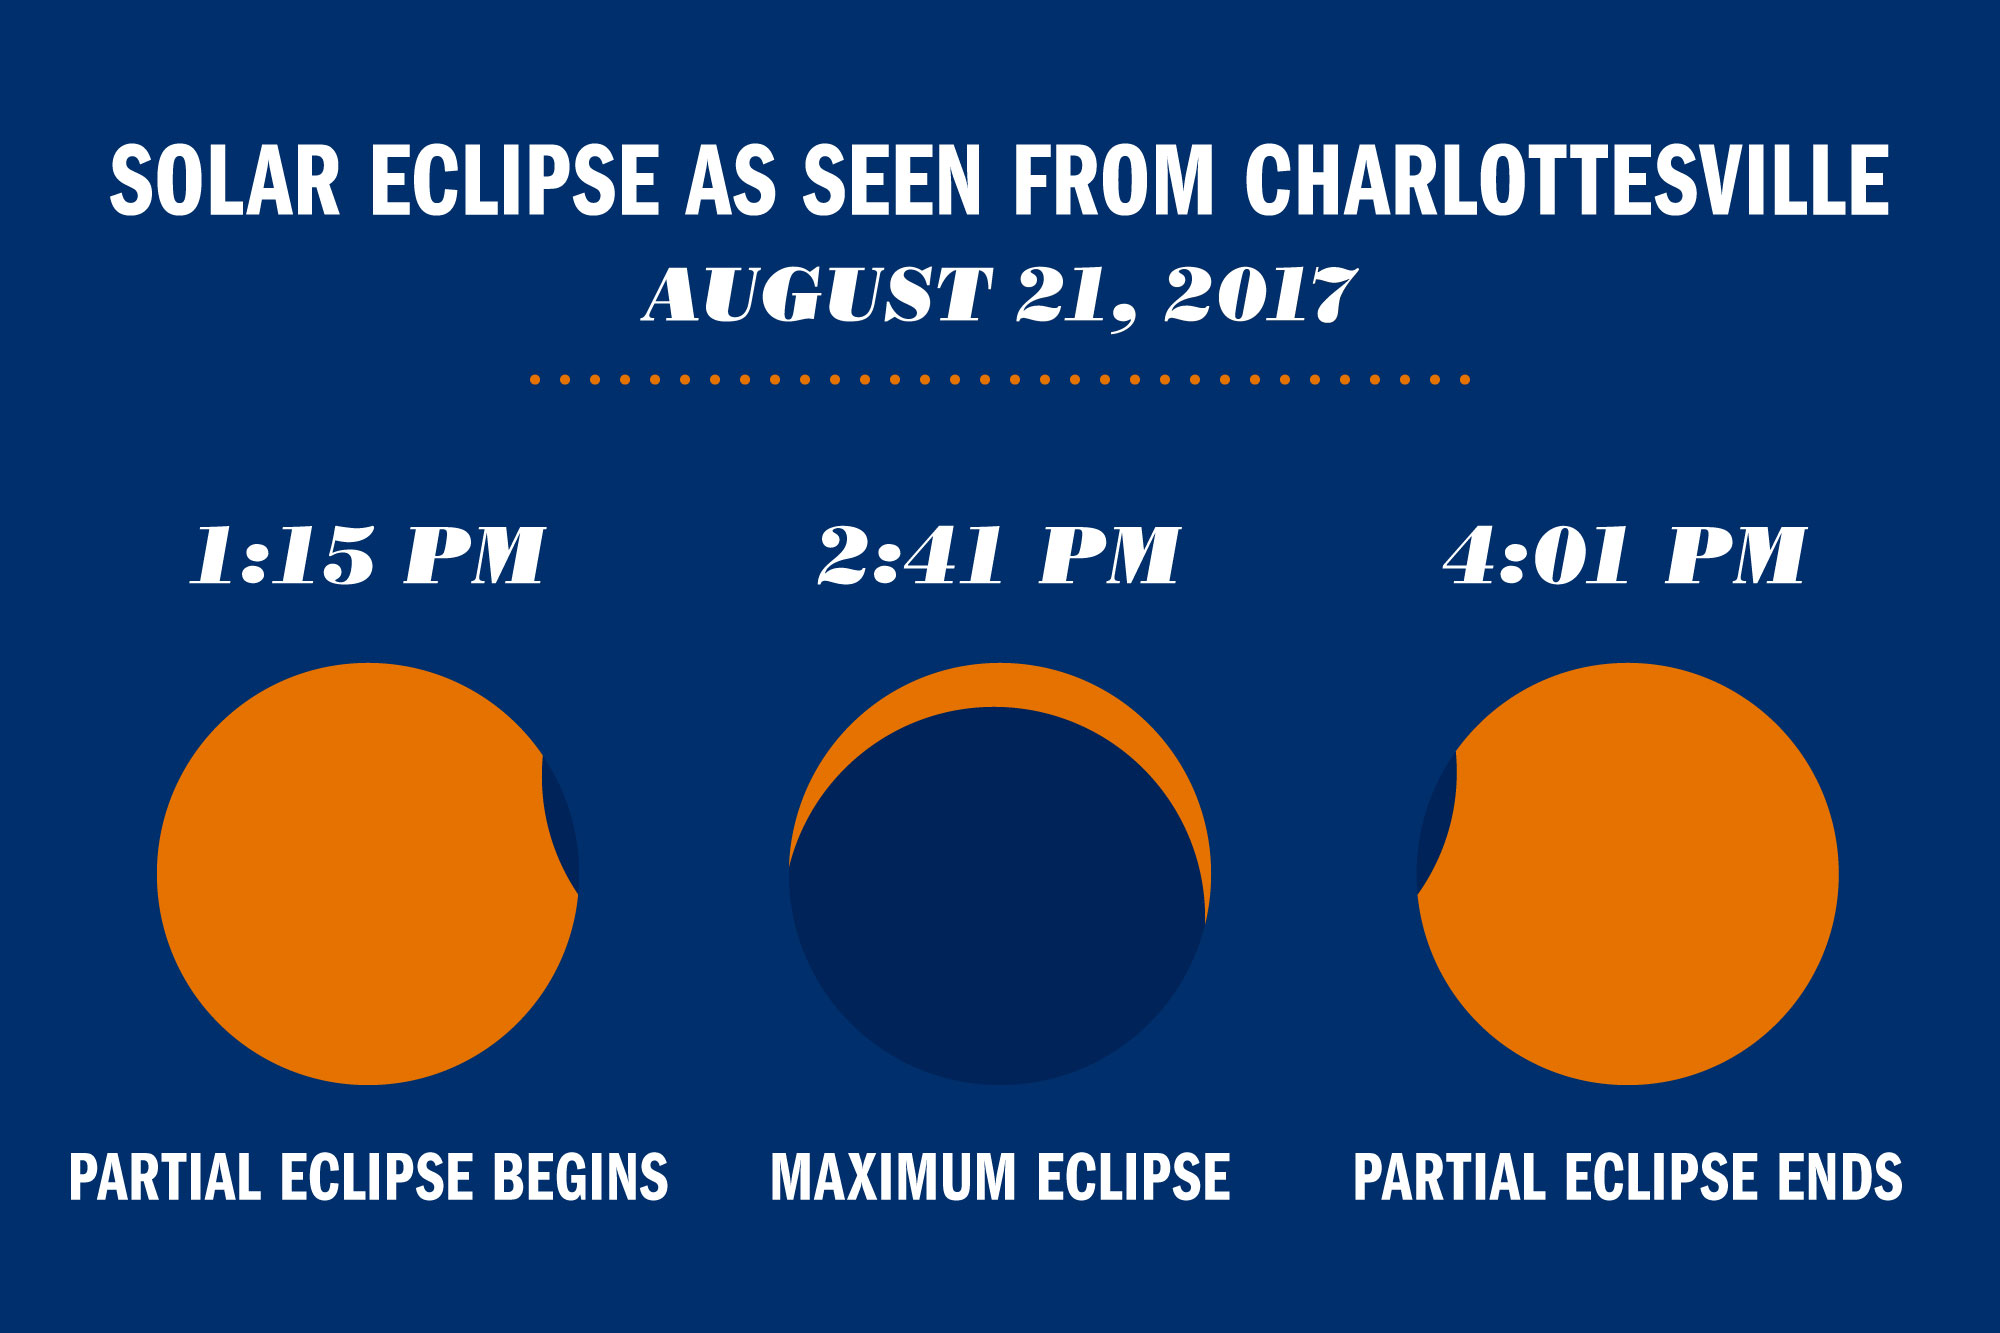 This is how the eclipsed sun will appear from Charlottesville on Aug. 21.